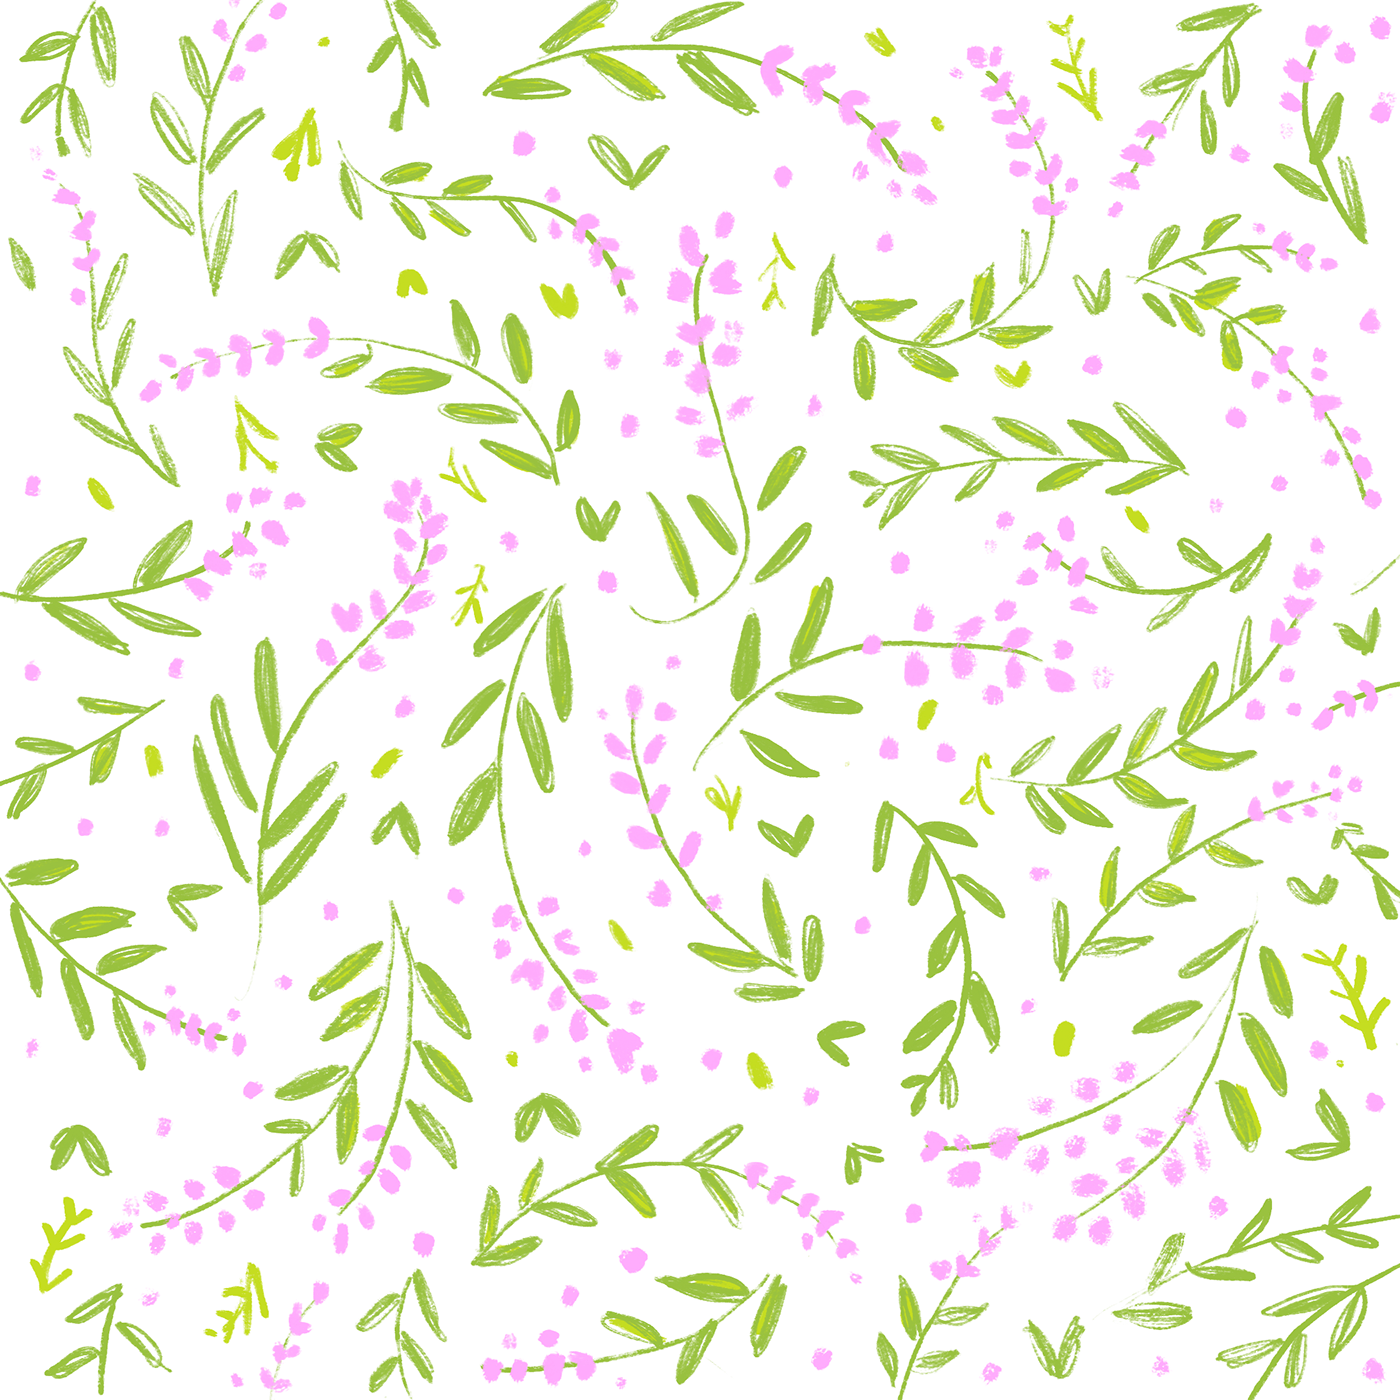 Flower pattern png. Bright and bold summer